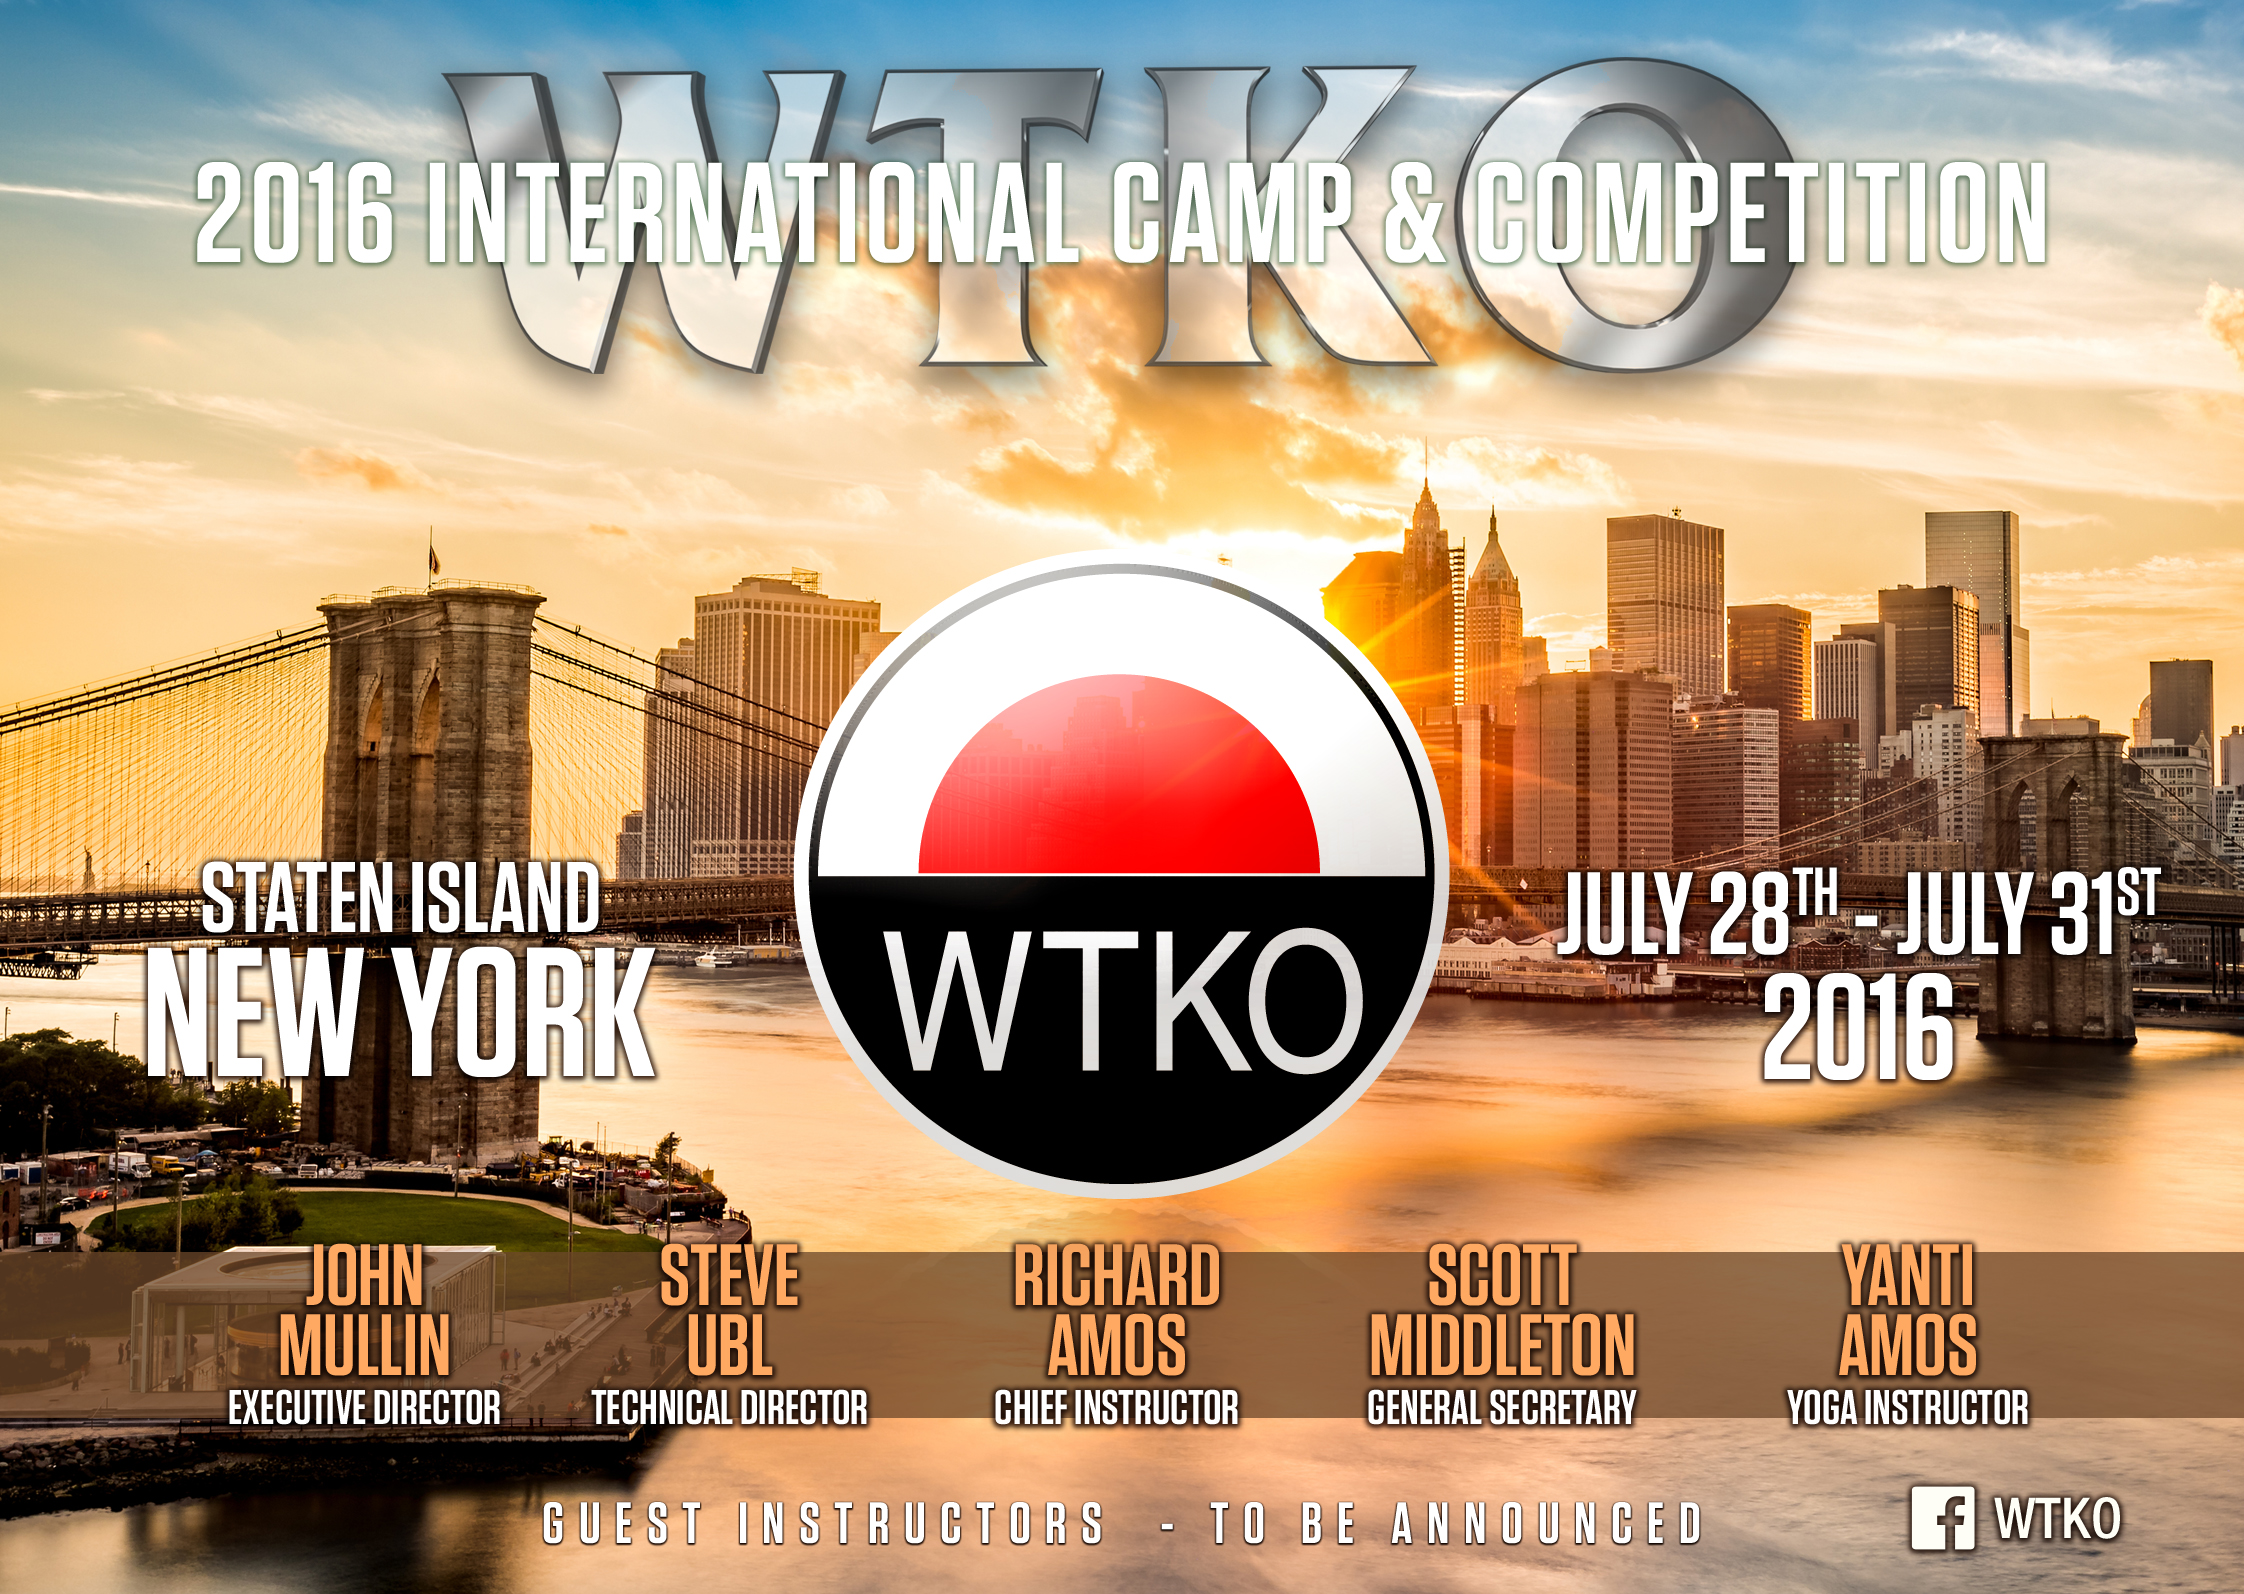 2016 WTKO International Camp & Competition